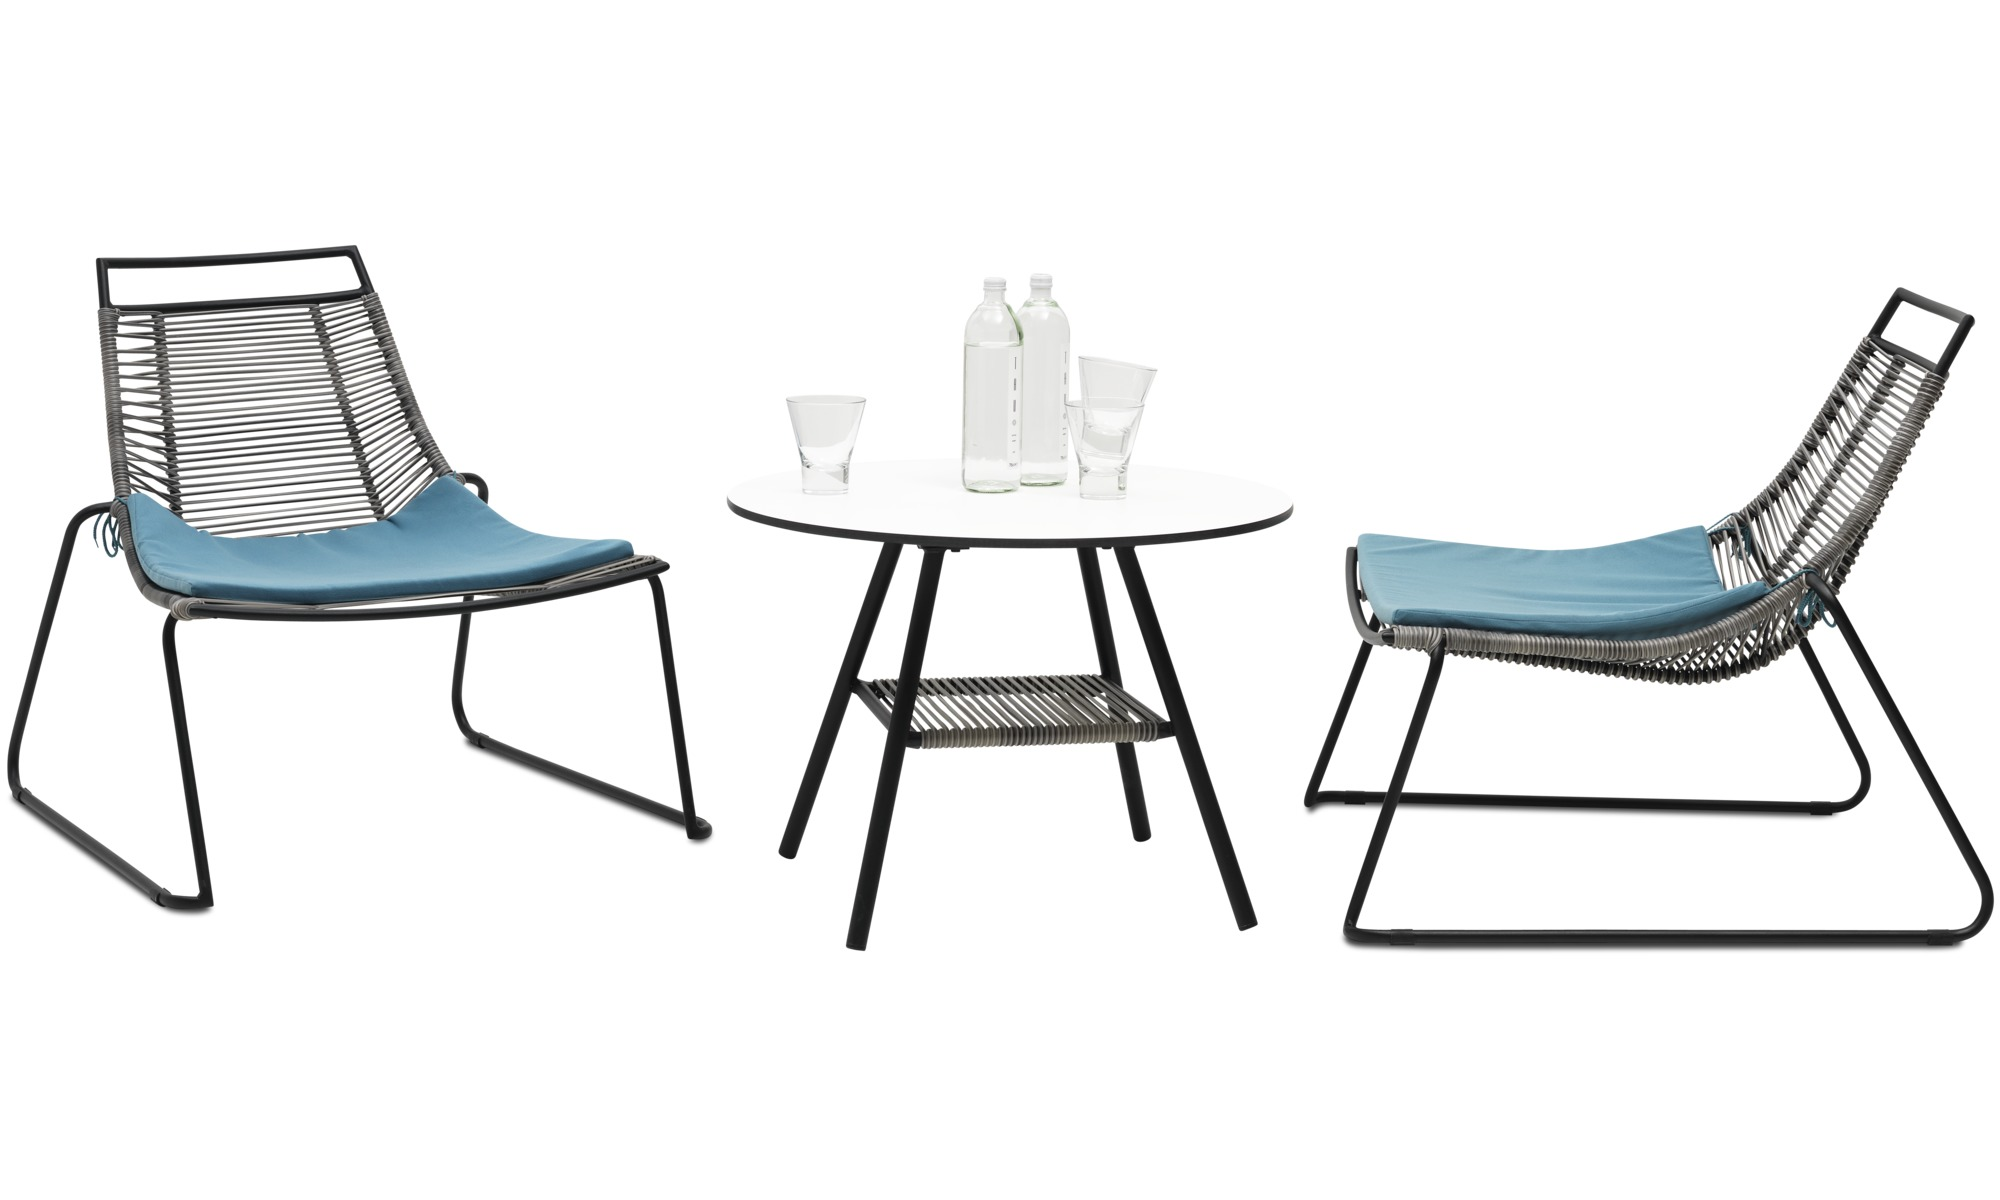 outdoor chairs elba lounge chair for in and outdoor use